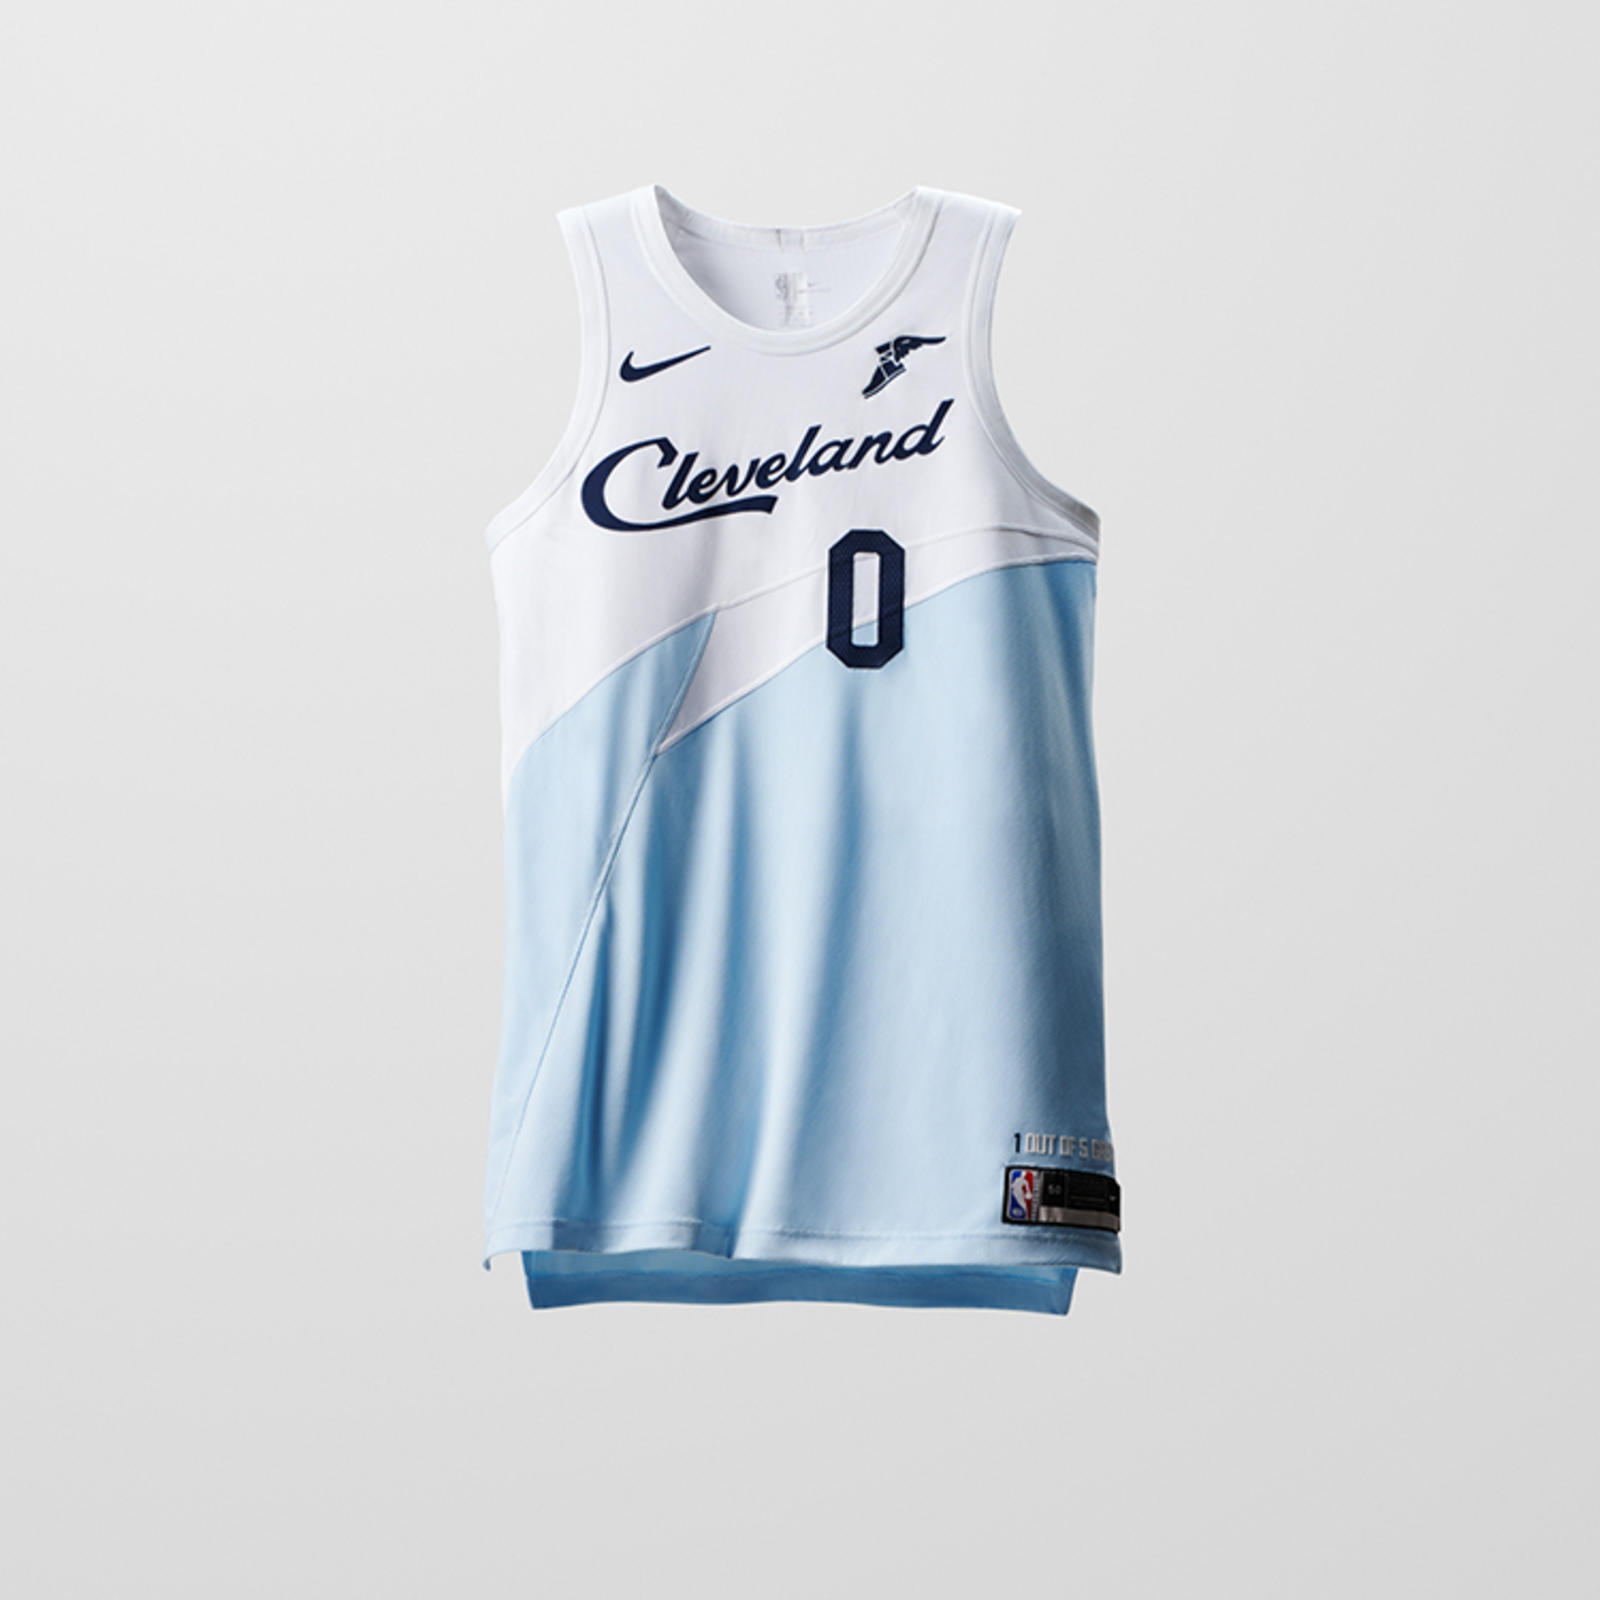 NBA Earned Edition Uniforms - Nike News